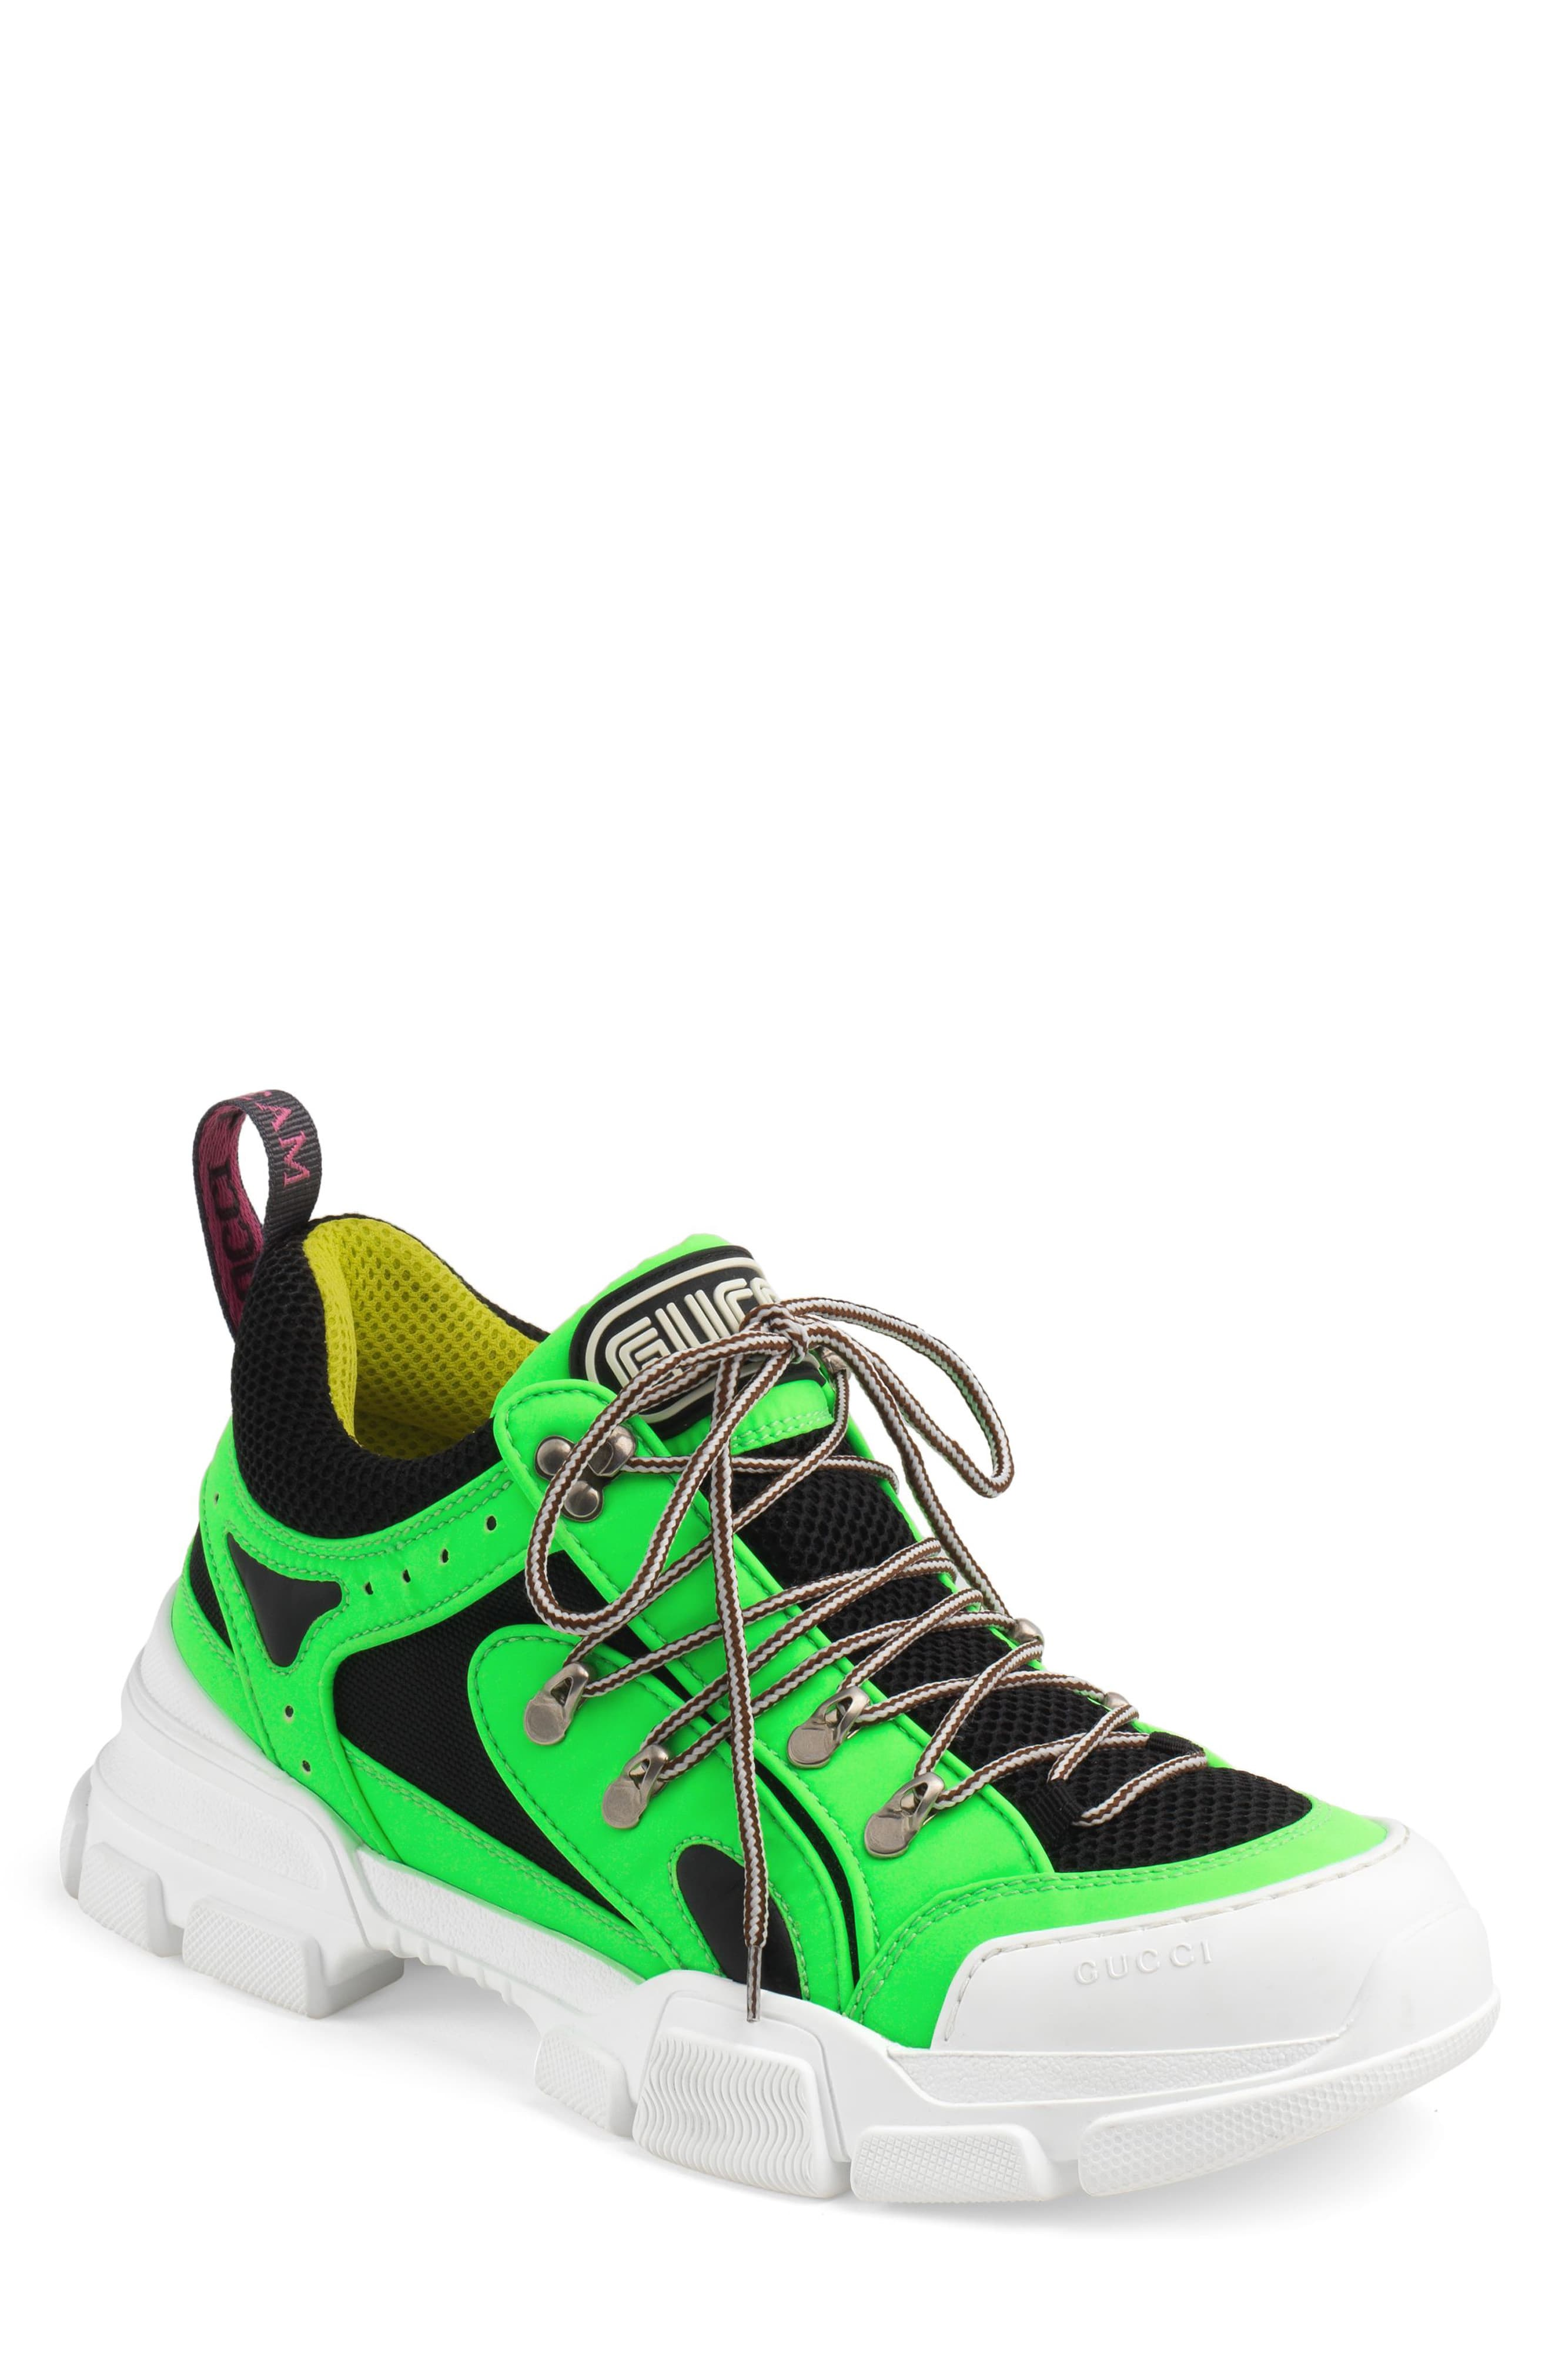 e08bd14e Gucci Flashtrek Sneaker in 2019 | Products | Hiking sneakers ...